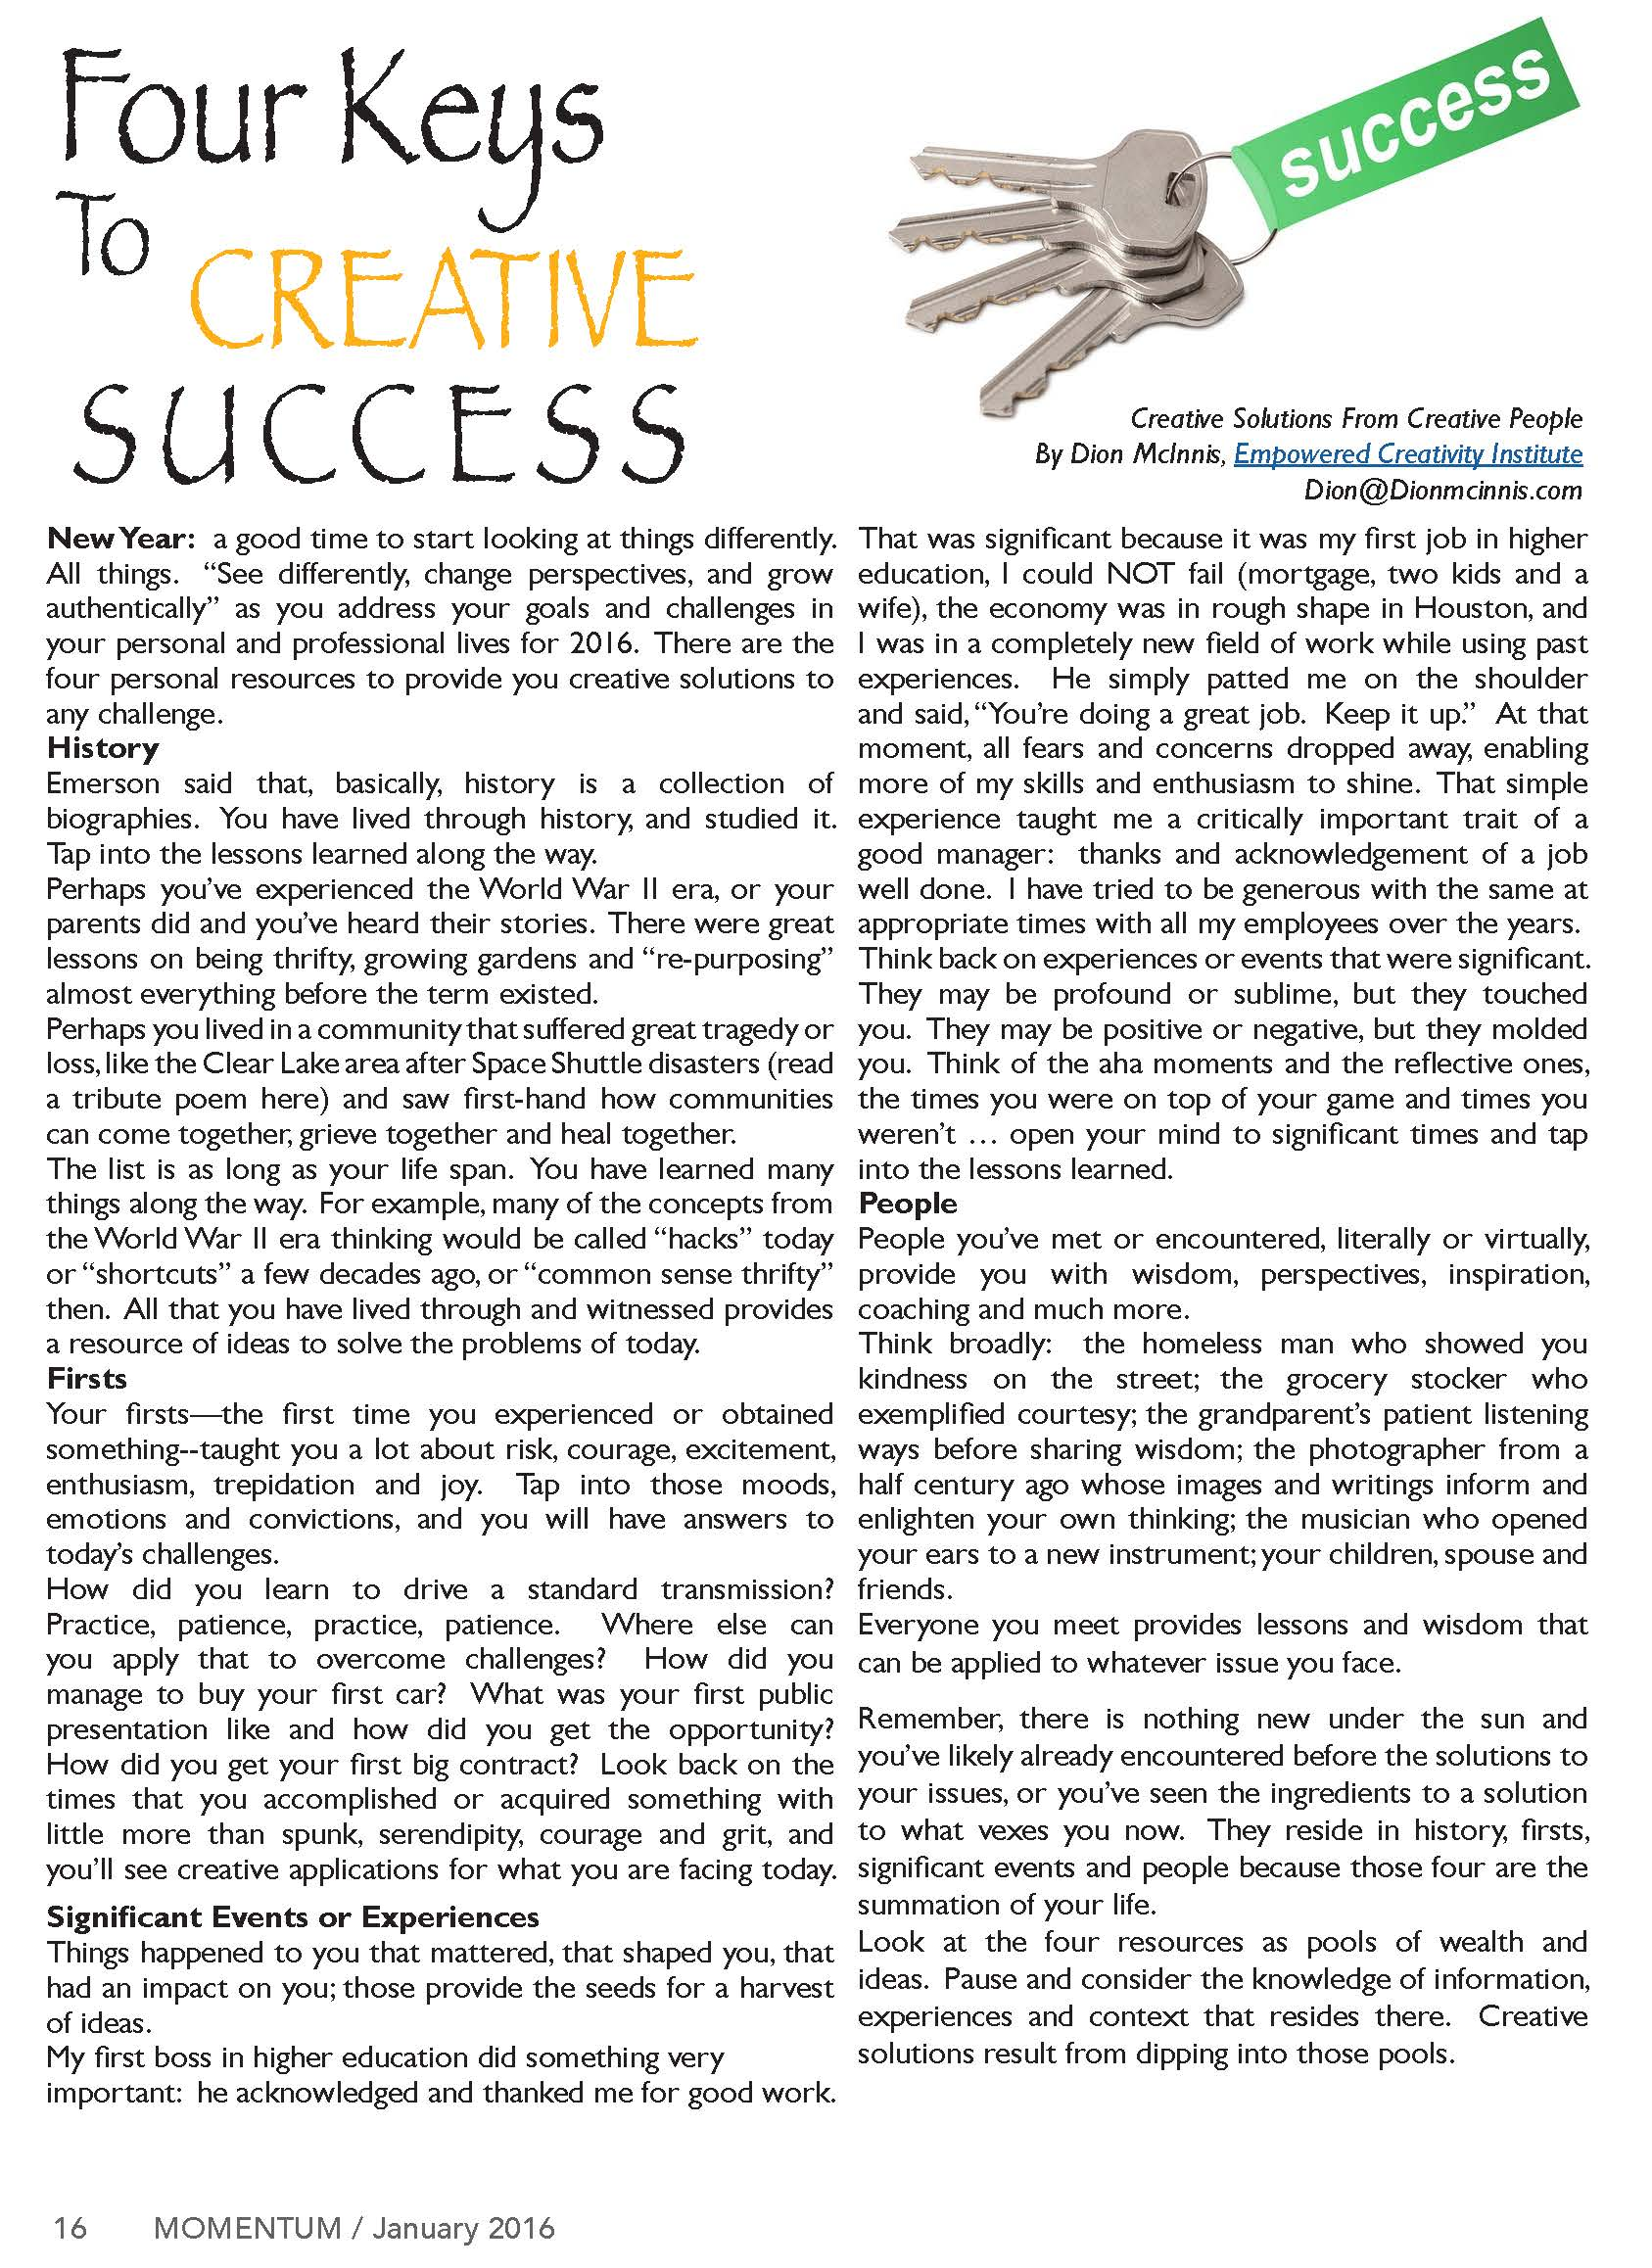 Momentum - Business to Business Online Magazine (1) 16